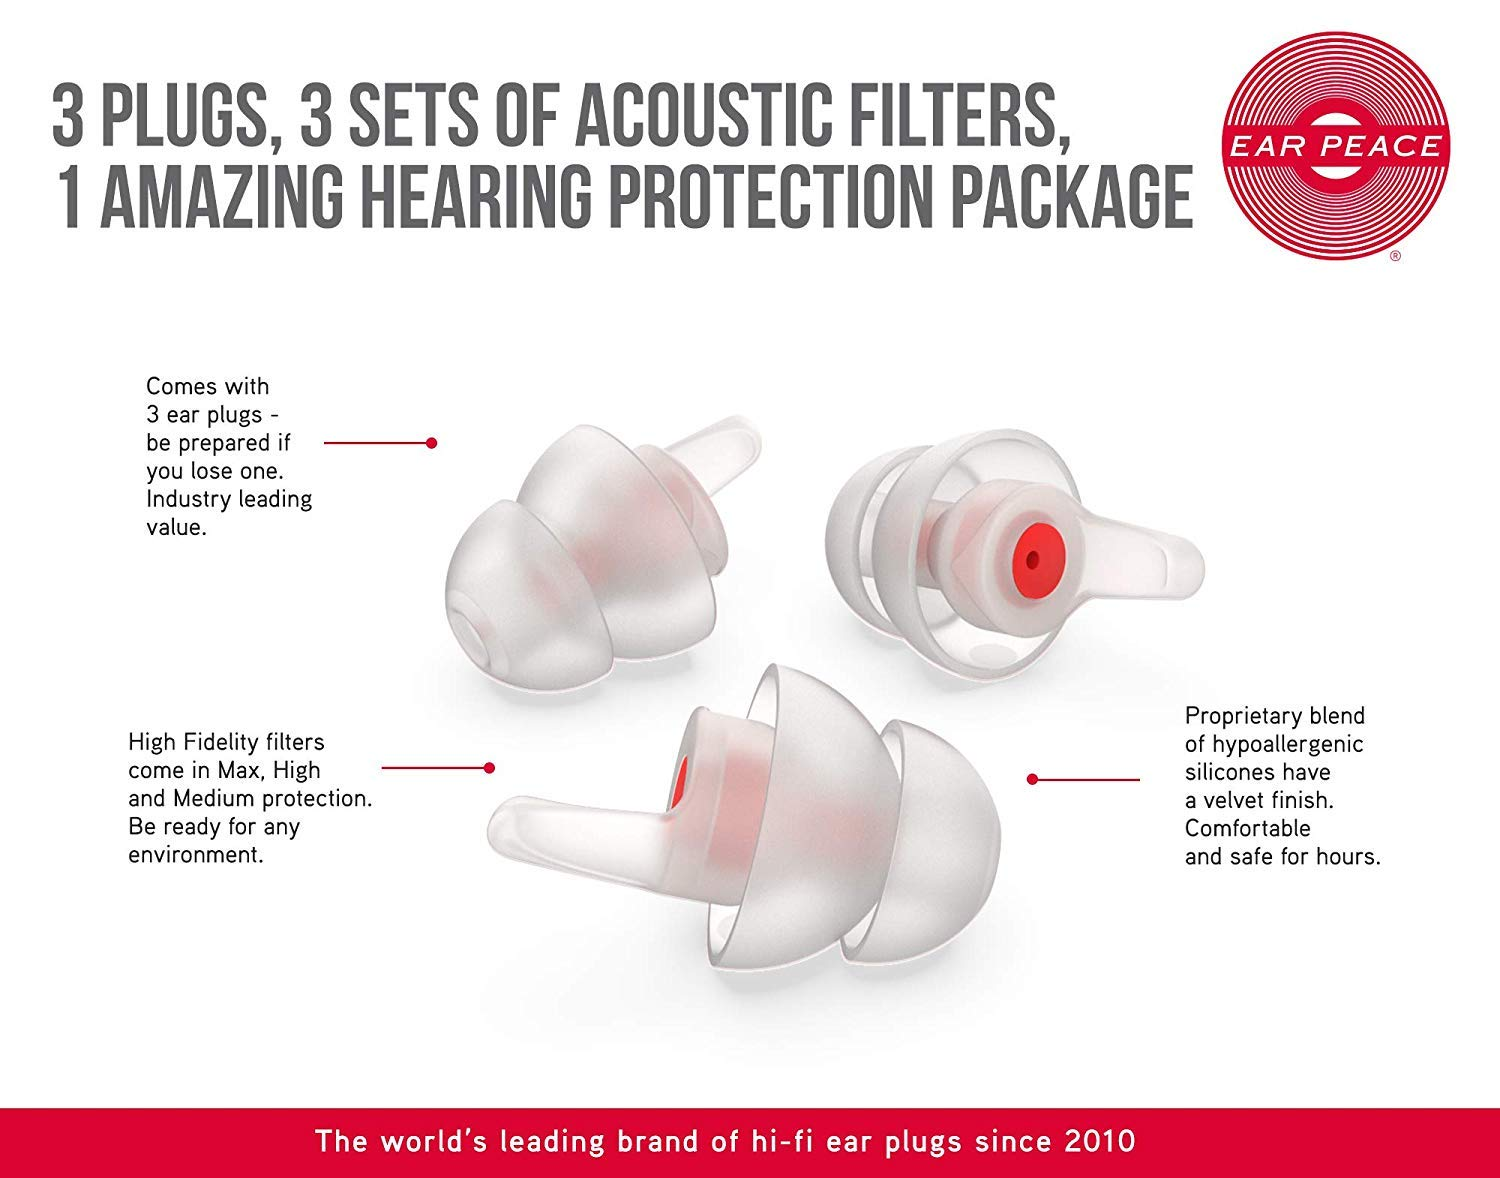 EarPeace HD Concert Ear Plugs High Fidelity Hearing Protection for Music Festivals, DJs & Musicians (Standard, Red Case)